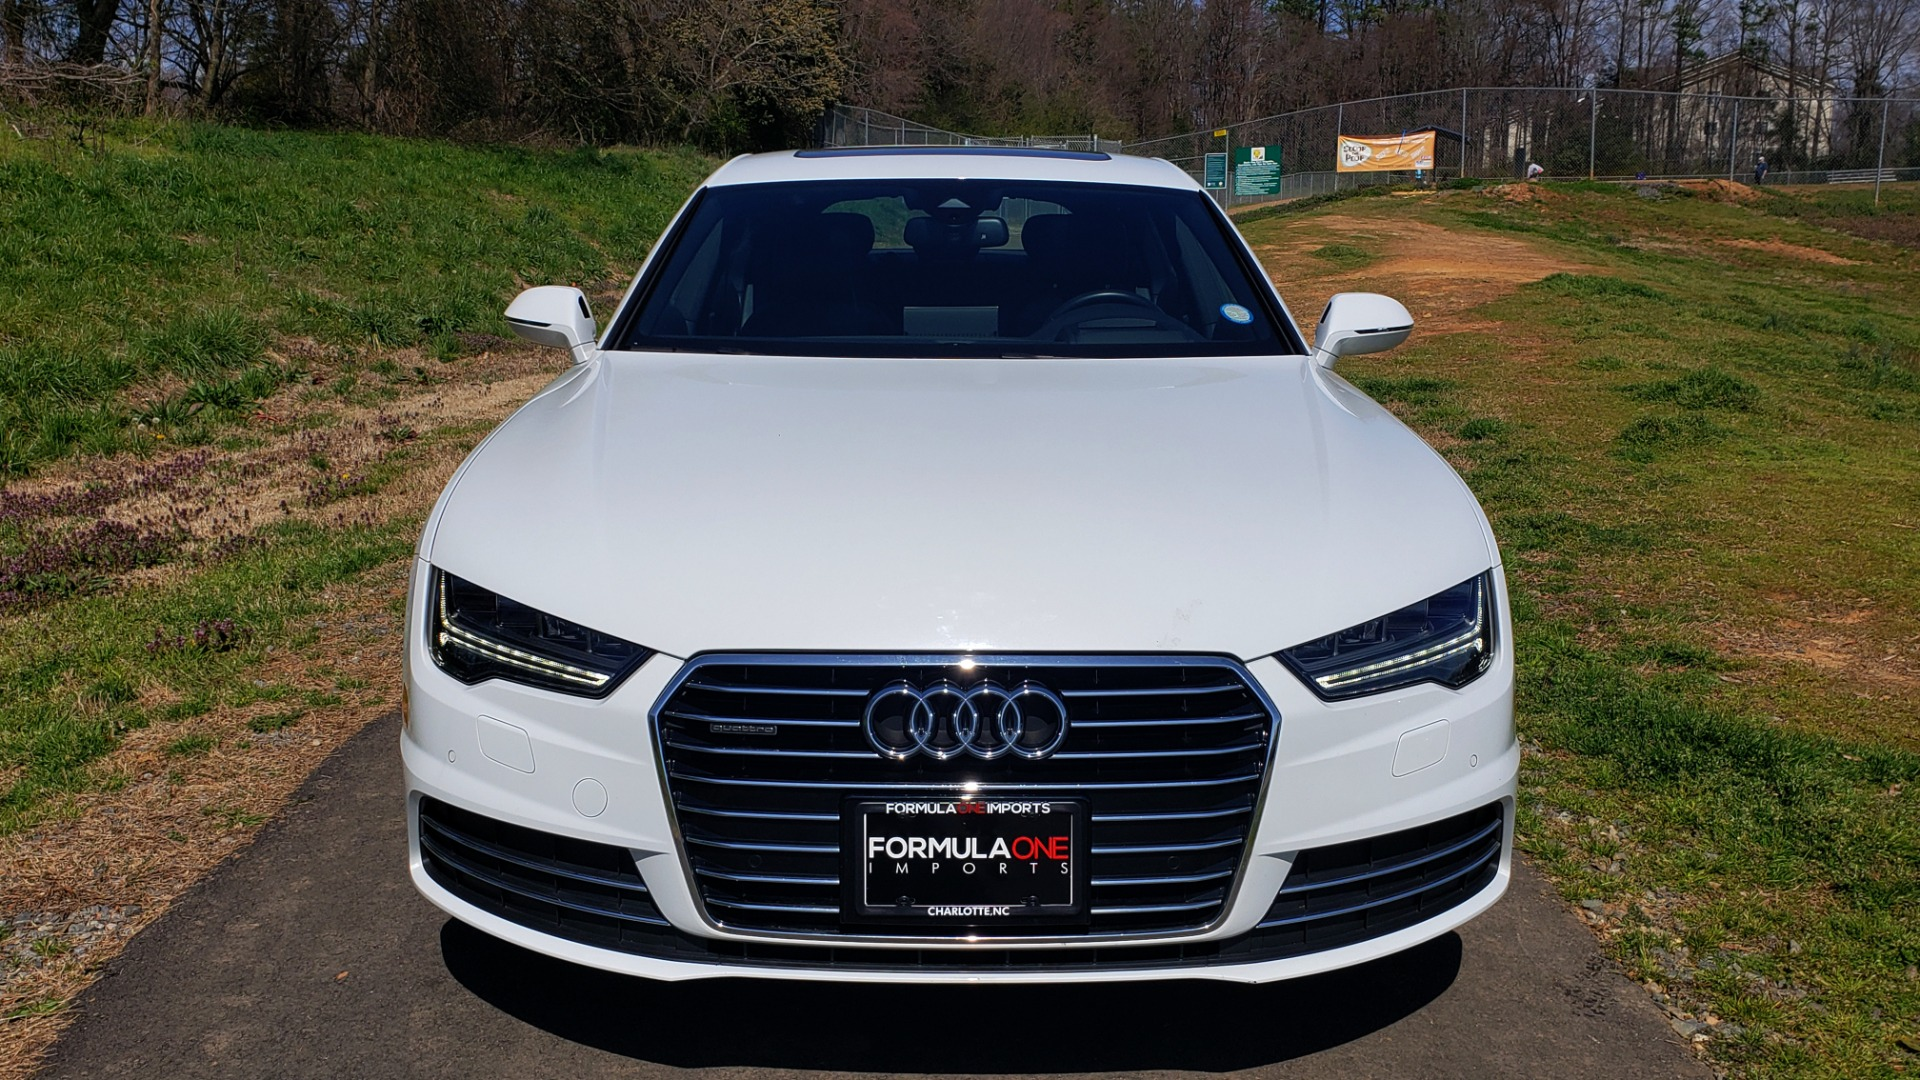 Used 2016 Audi A7 3.0 PRESTIGE 3.0T / NAV / SNRF / HUD / CLD WTHR / BOSE / REARVIEW for sale Sold at Formula Imports in Charlotte NC 28227 9